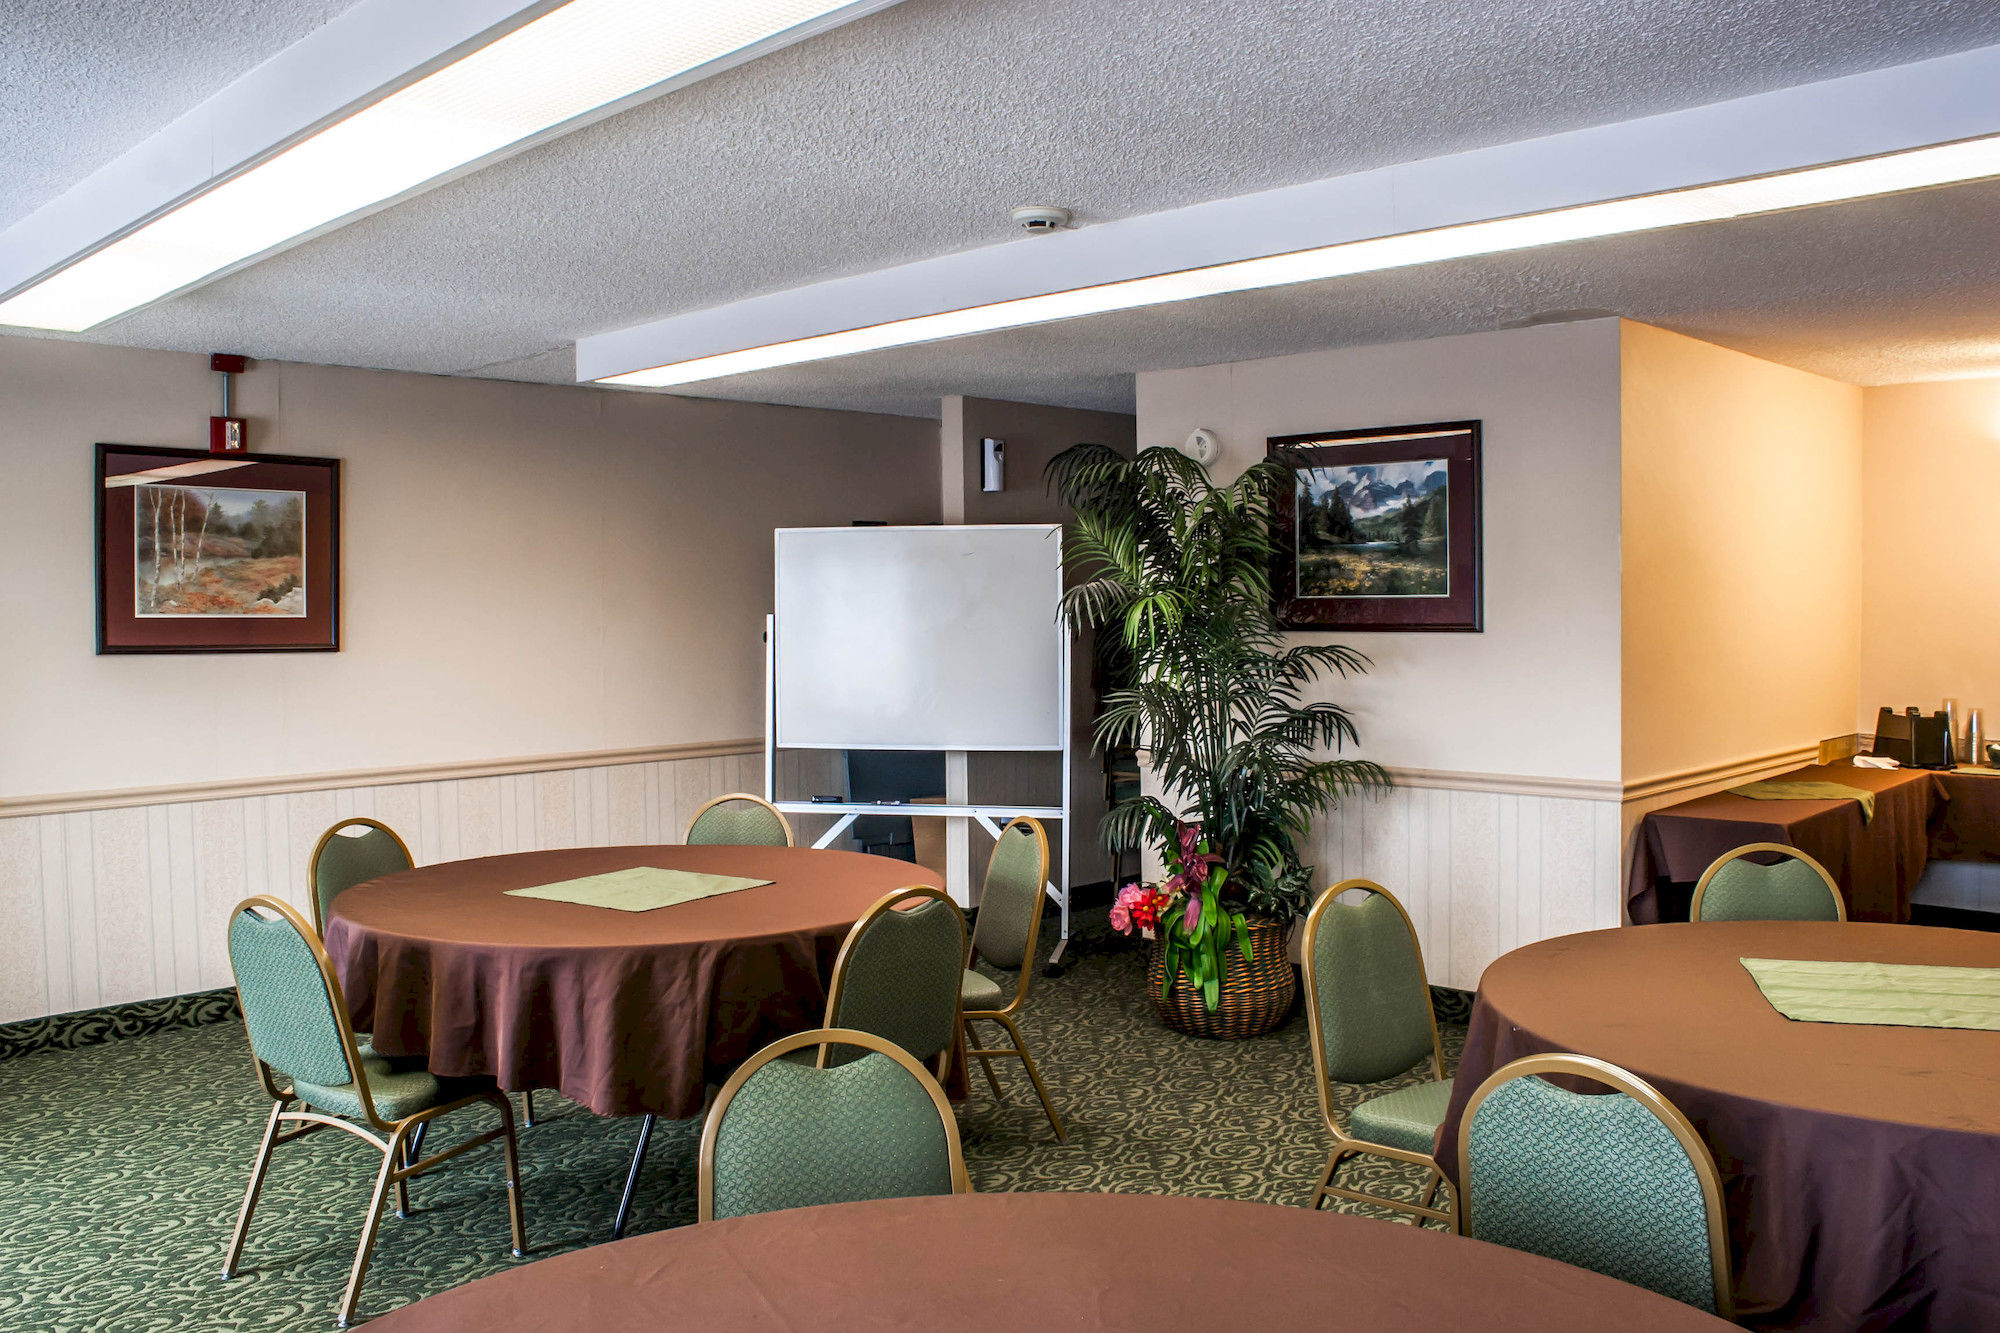 seattle hotel coupons for seattle washington freehotelcoupons com clarion hotel seattle airport